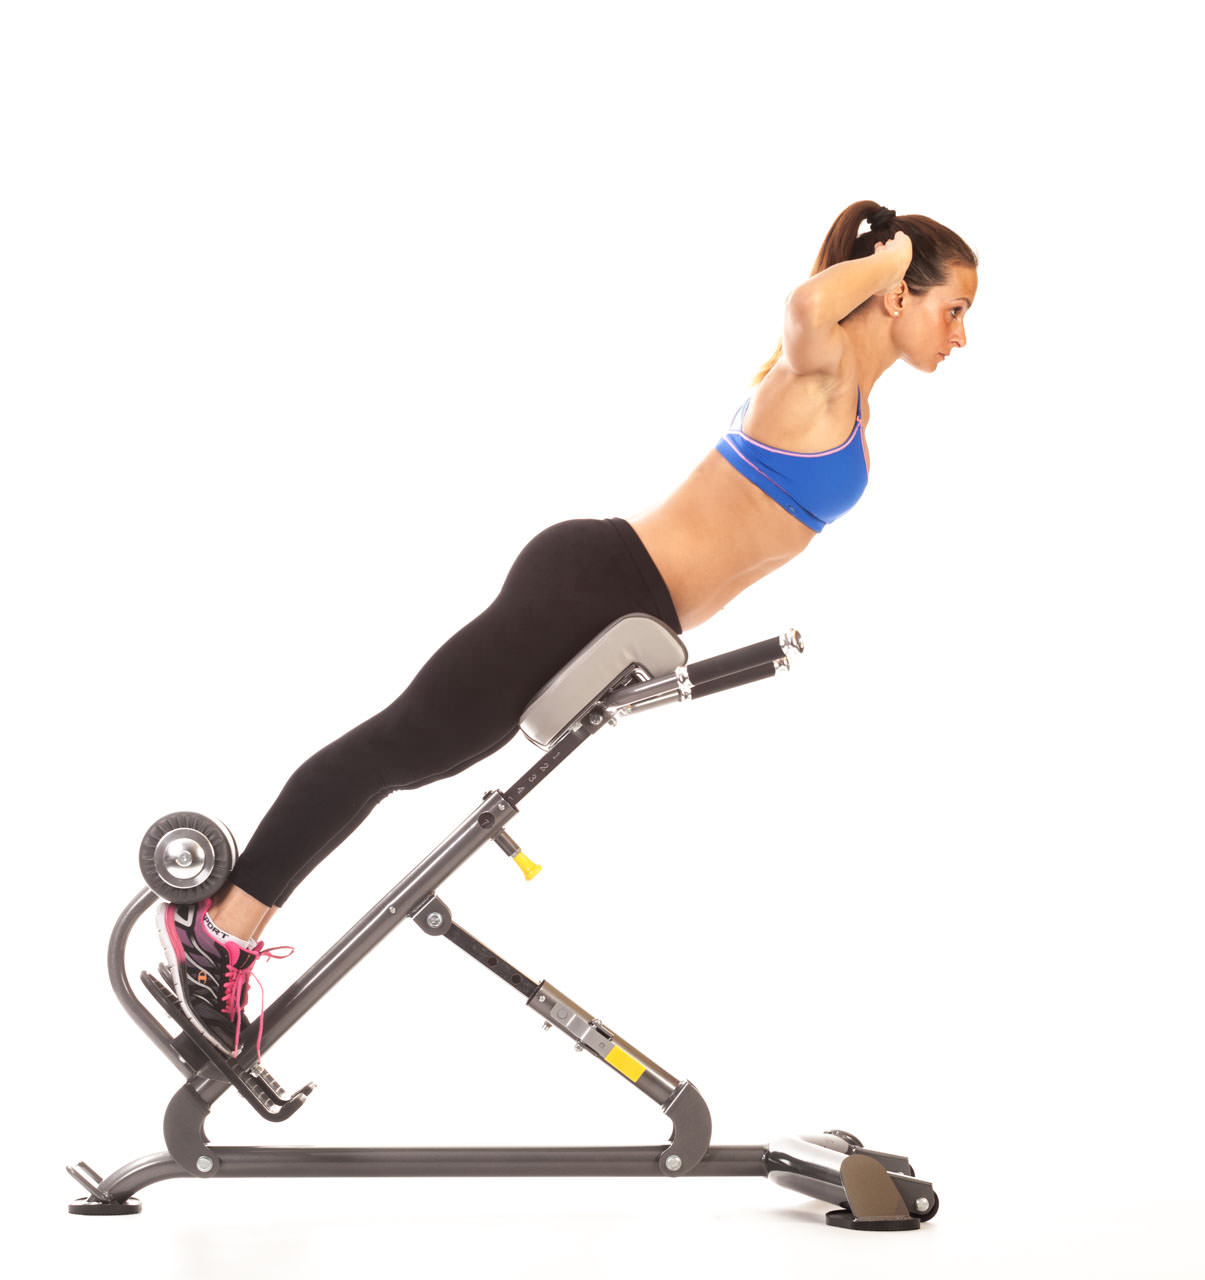 Back Extension (Hyperextension Bench) frame #1